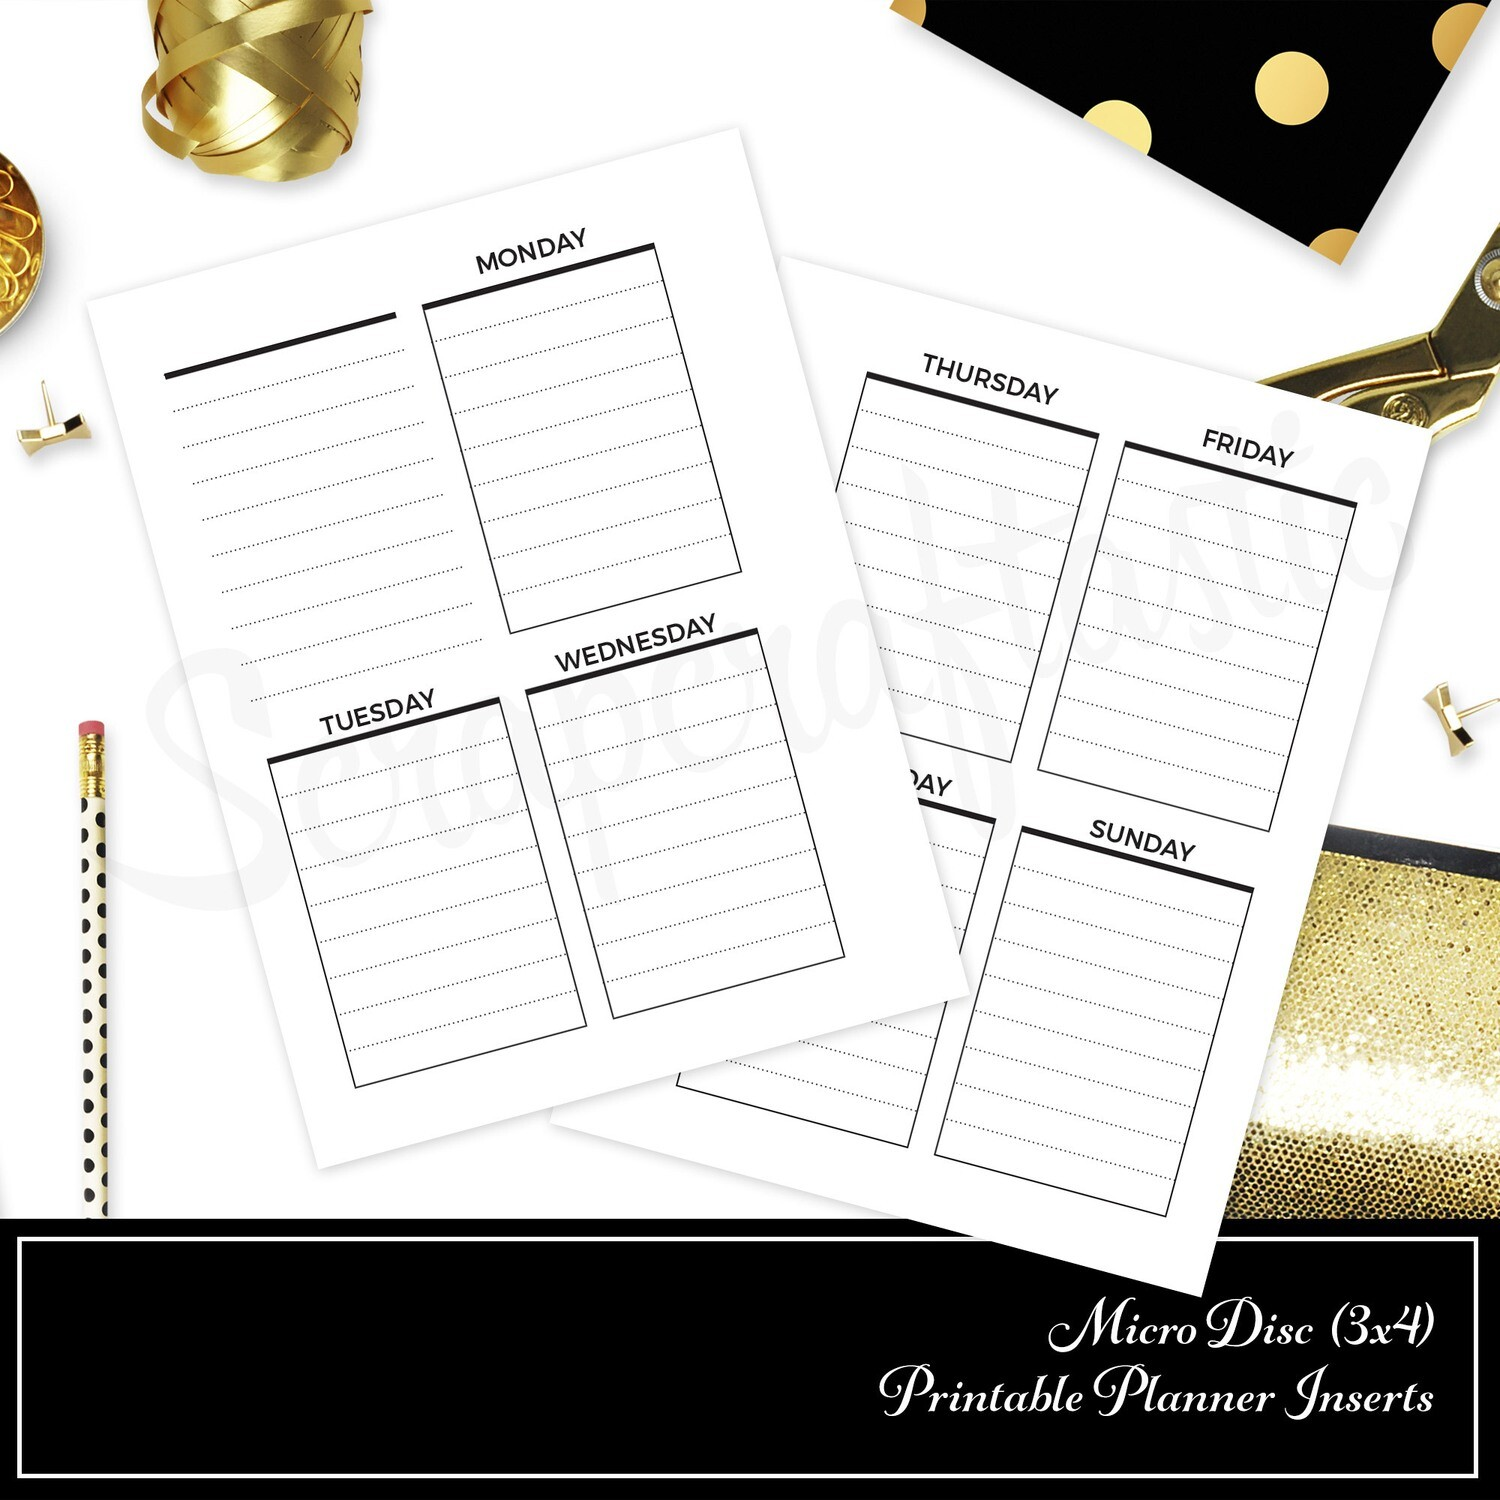 graphic regarding Printable Planner Inserts identified as MICRO DISC - Vertical Coated Undated Weekly Printable Planner Incorporate